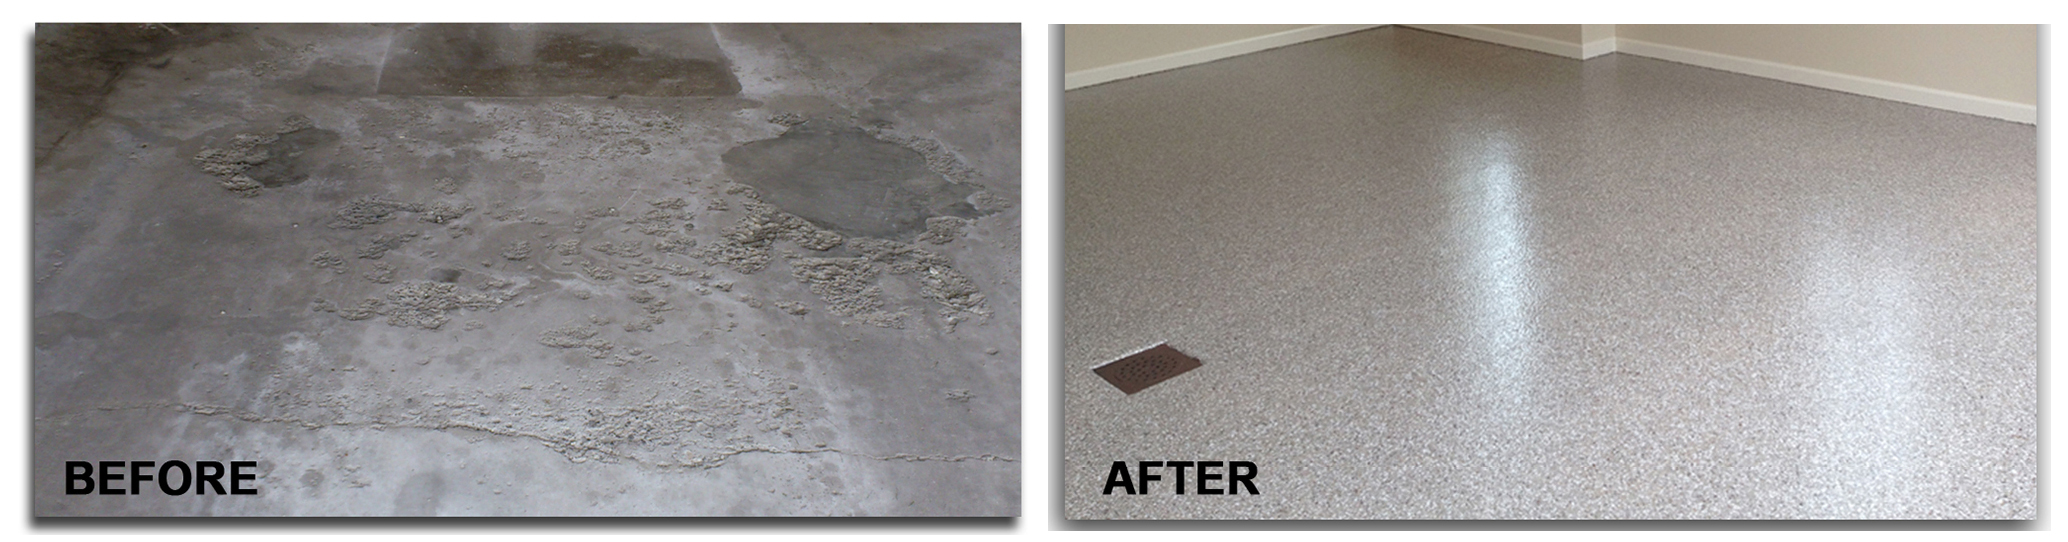 REPAIR AND RENEW YOUR GARAGE FLOOR